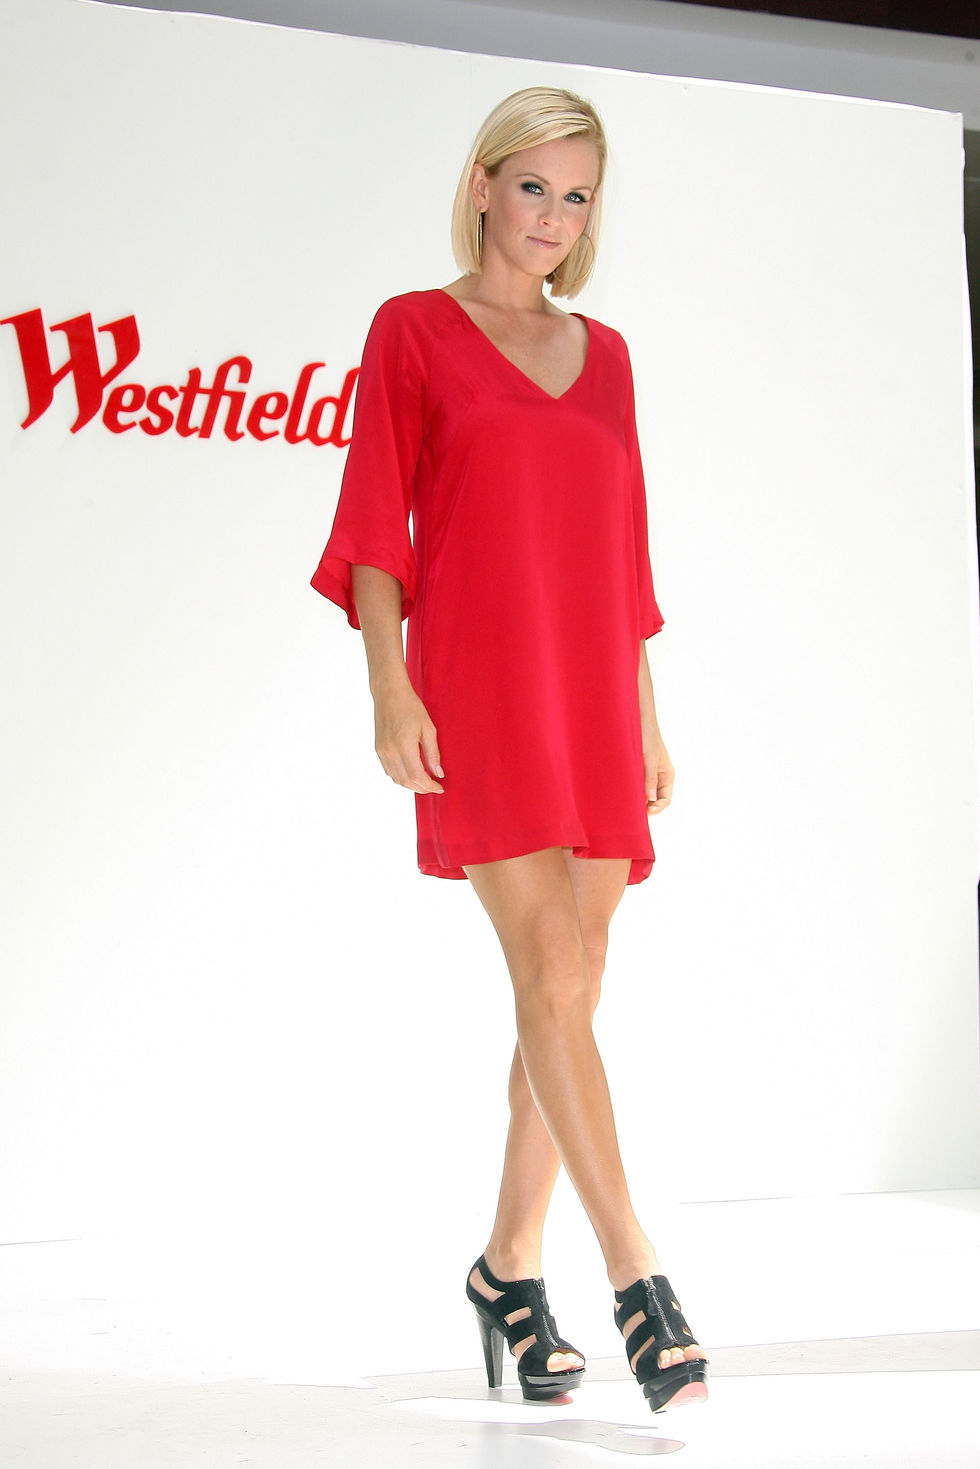 jenny-mccarthy-westfield-topangas-luxury-wing-grand-opening-in-canoga-park-01